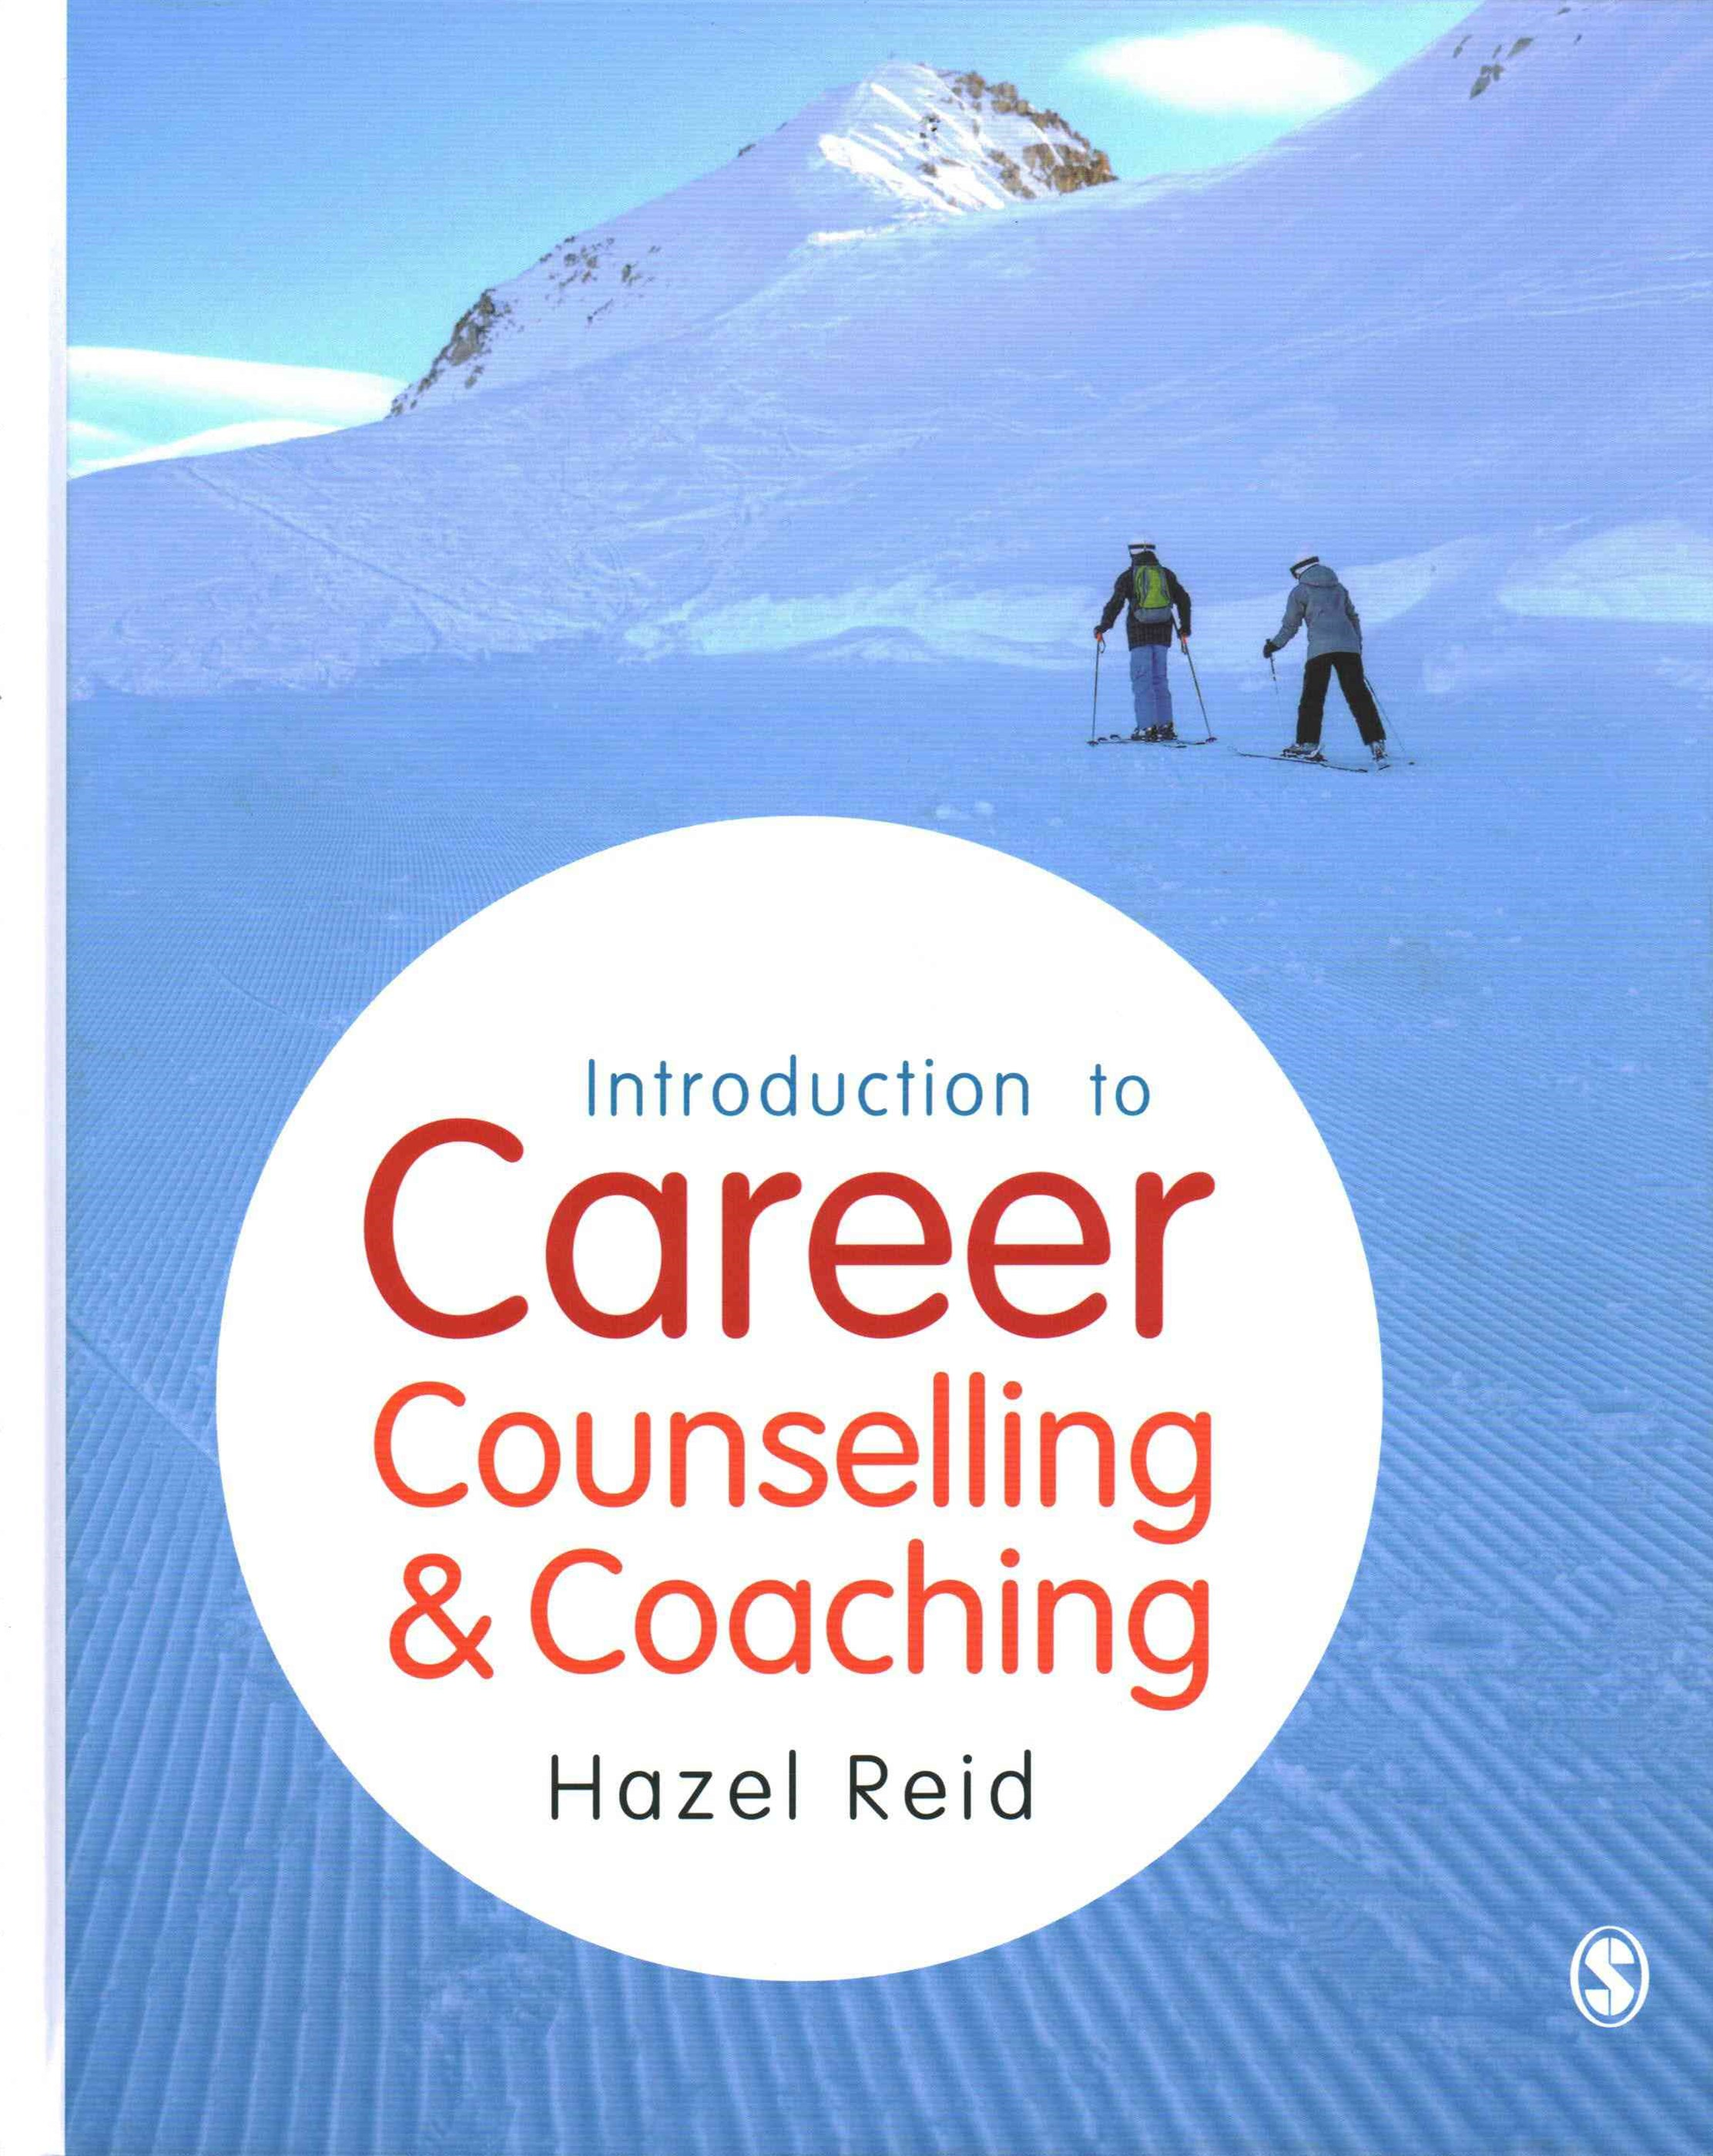 Introduction to Career Counselling and Coaching